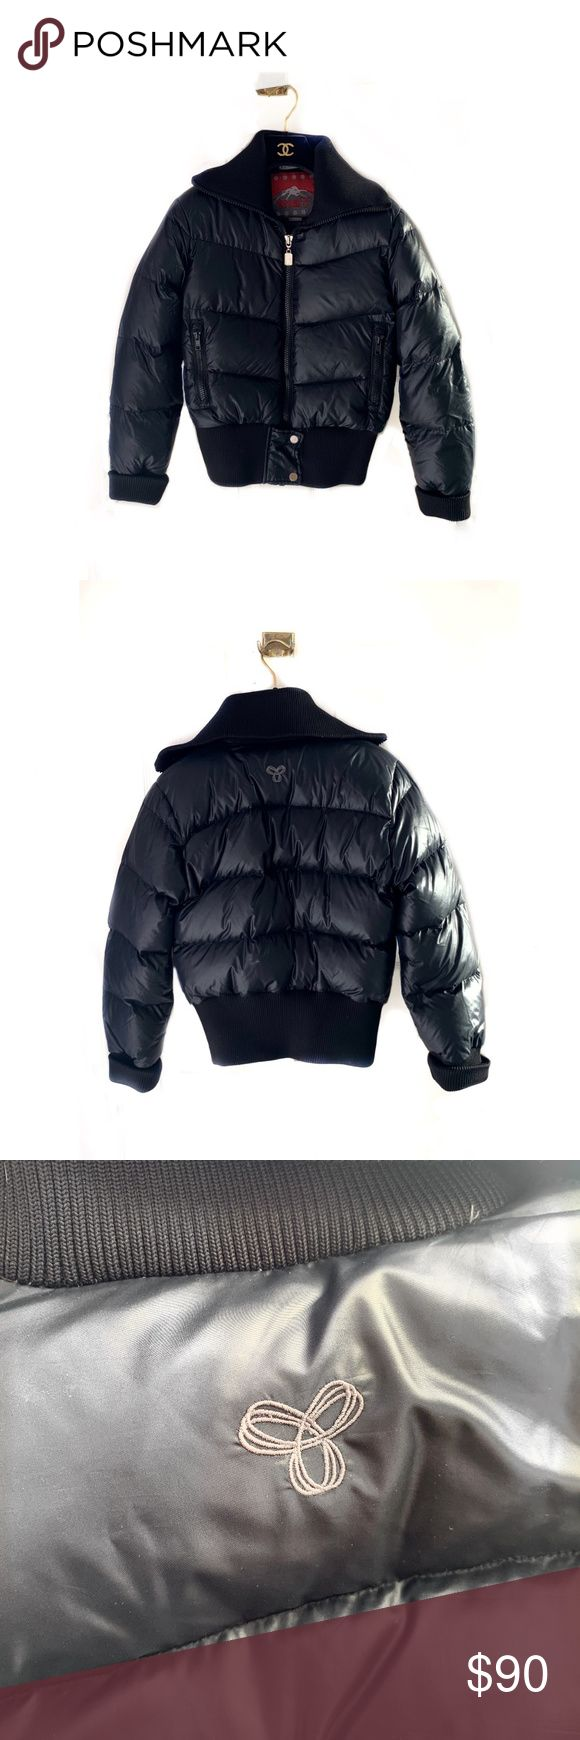 Aritzia TNA Puffer Bomber Jacket (With images) Black